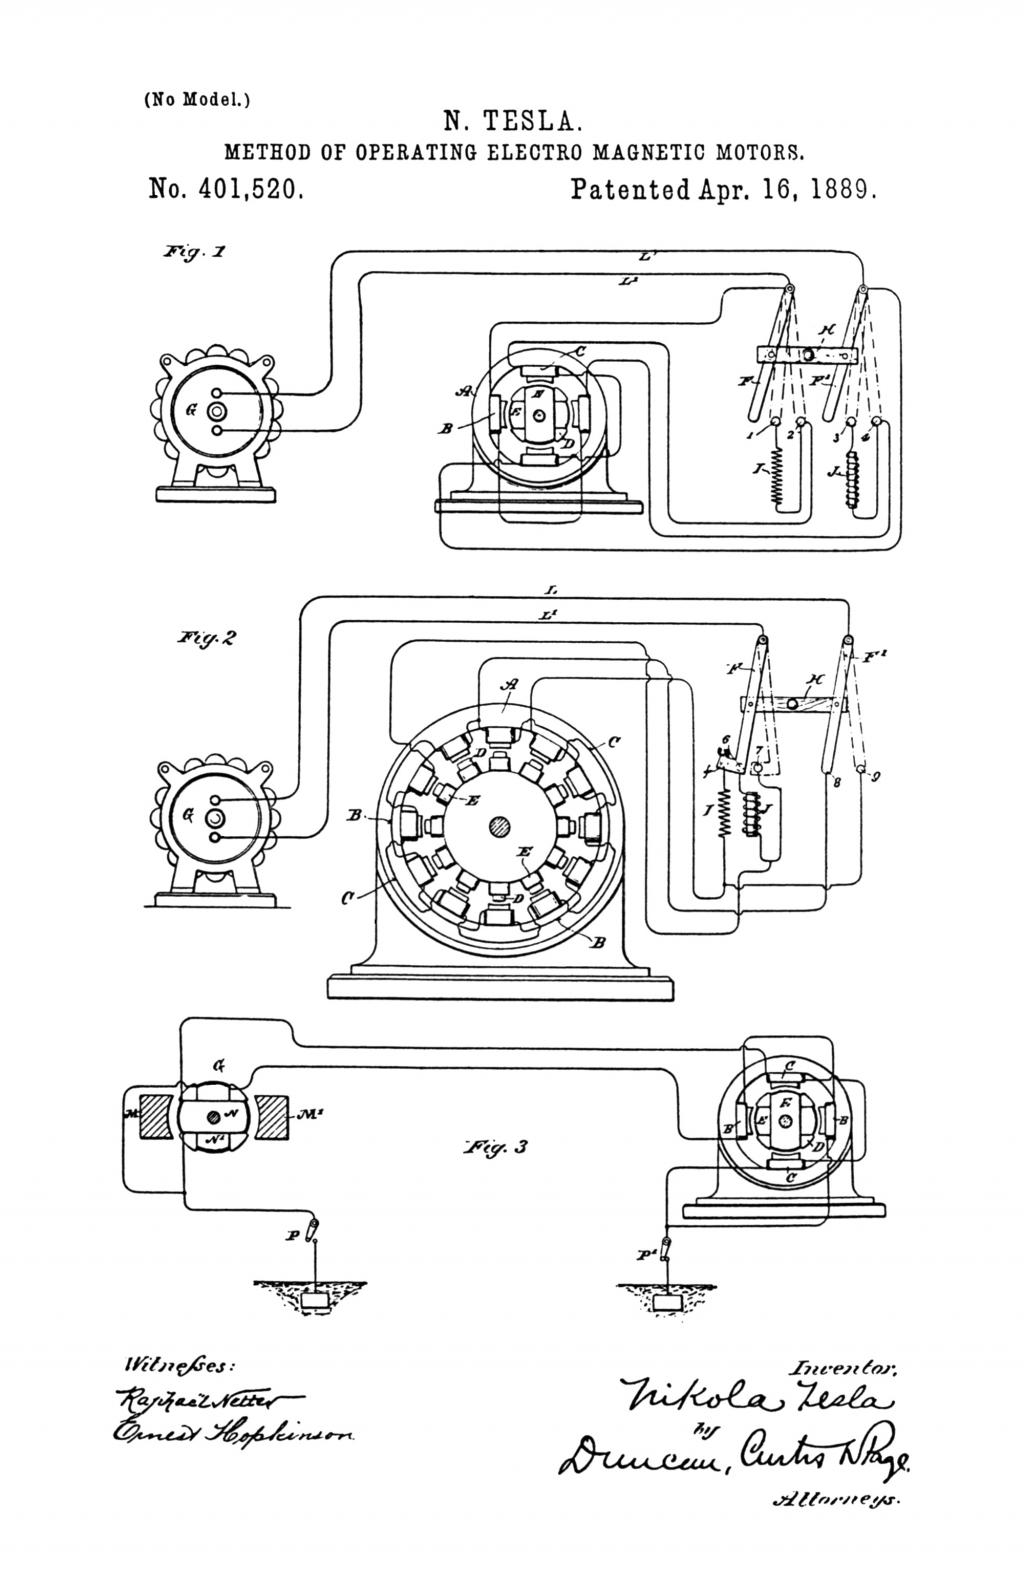 Nikola Tesla U.S. Patent 401,520 - Method of Operating Electro-Magnetic Motors - Image 1